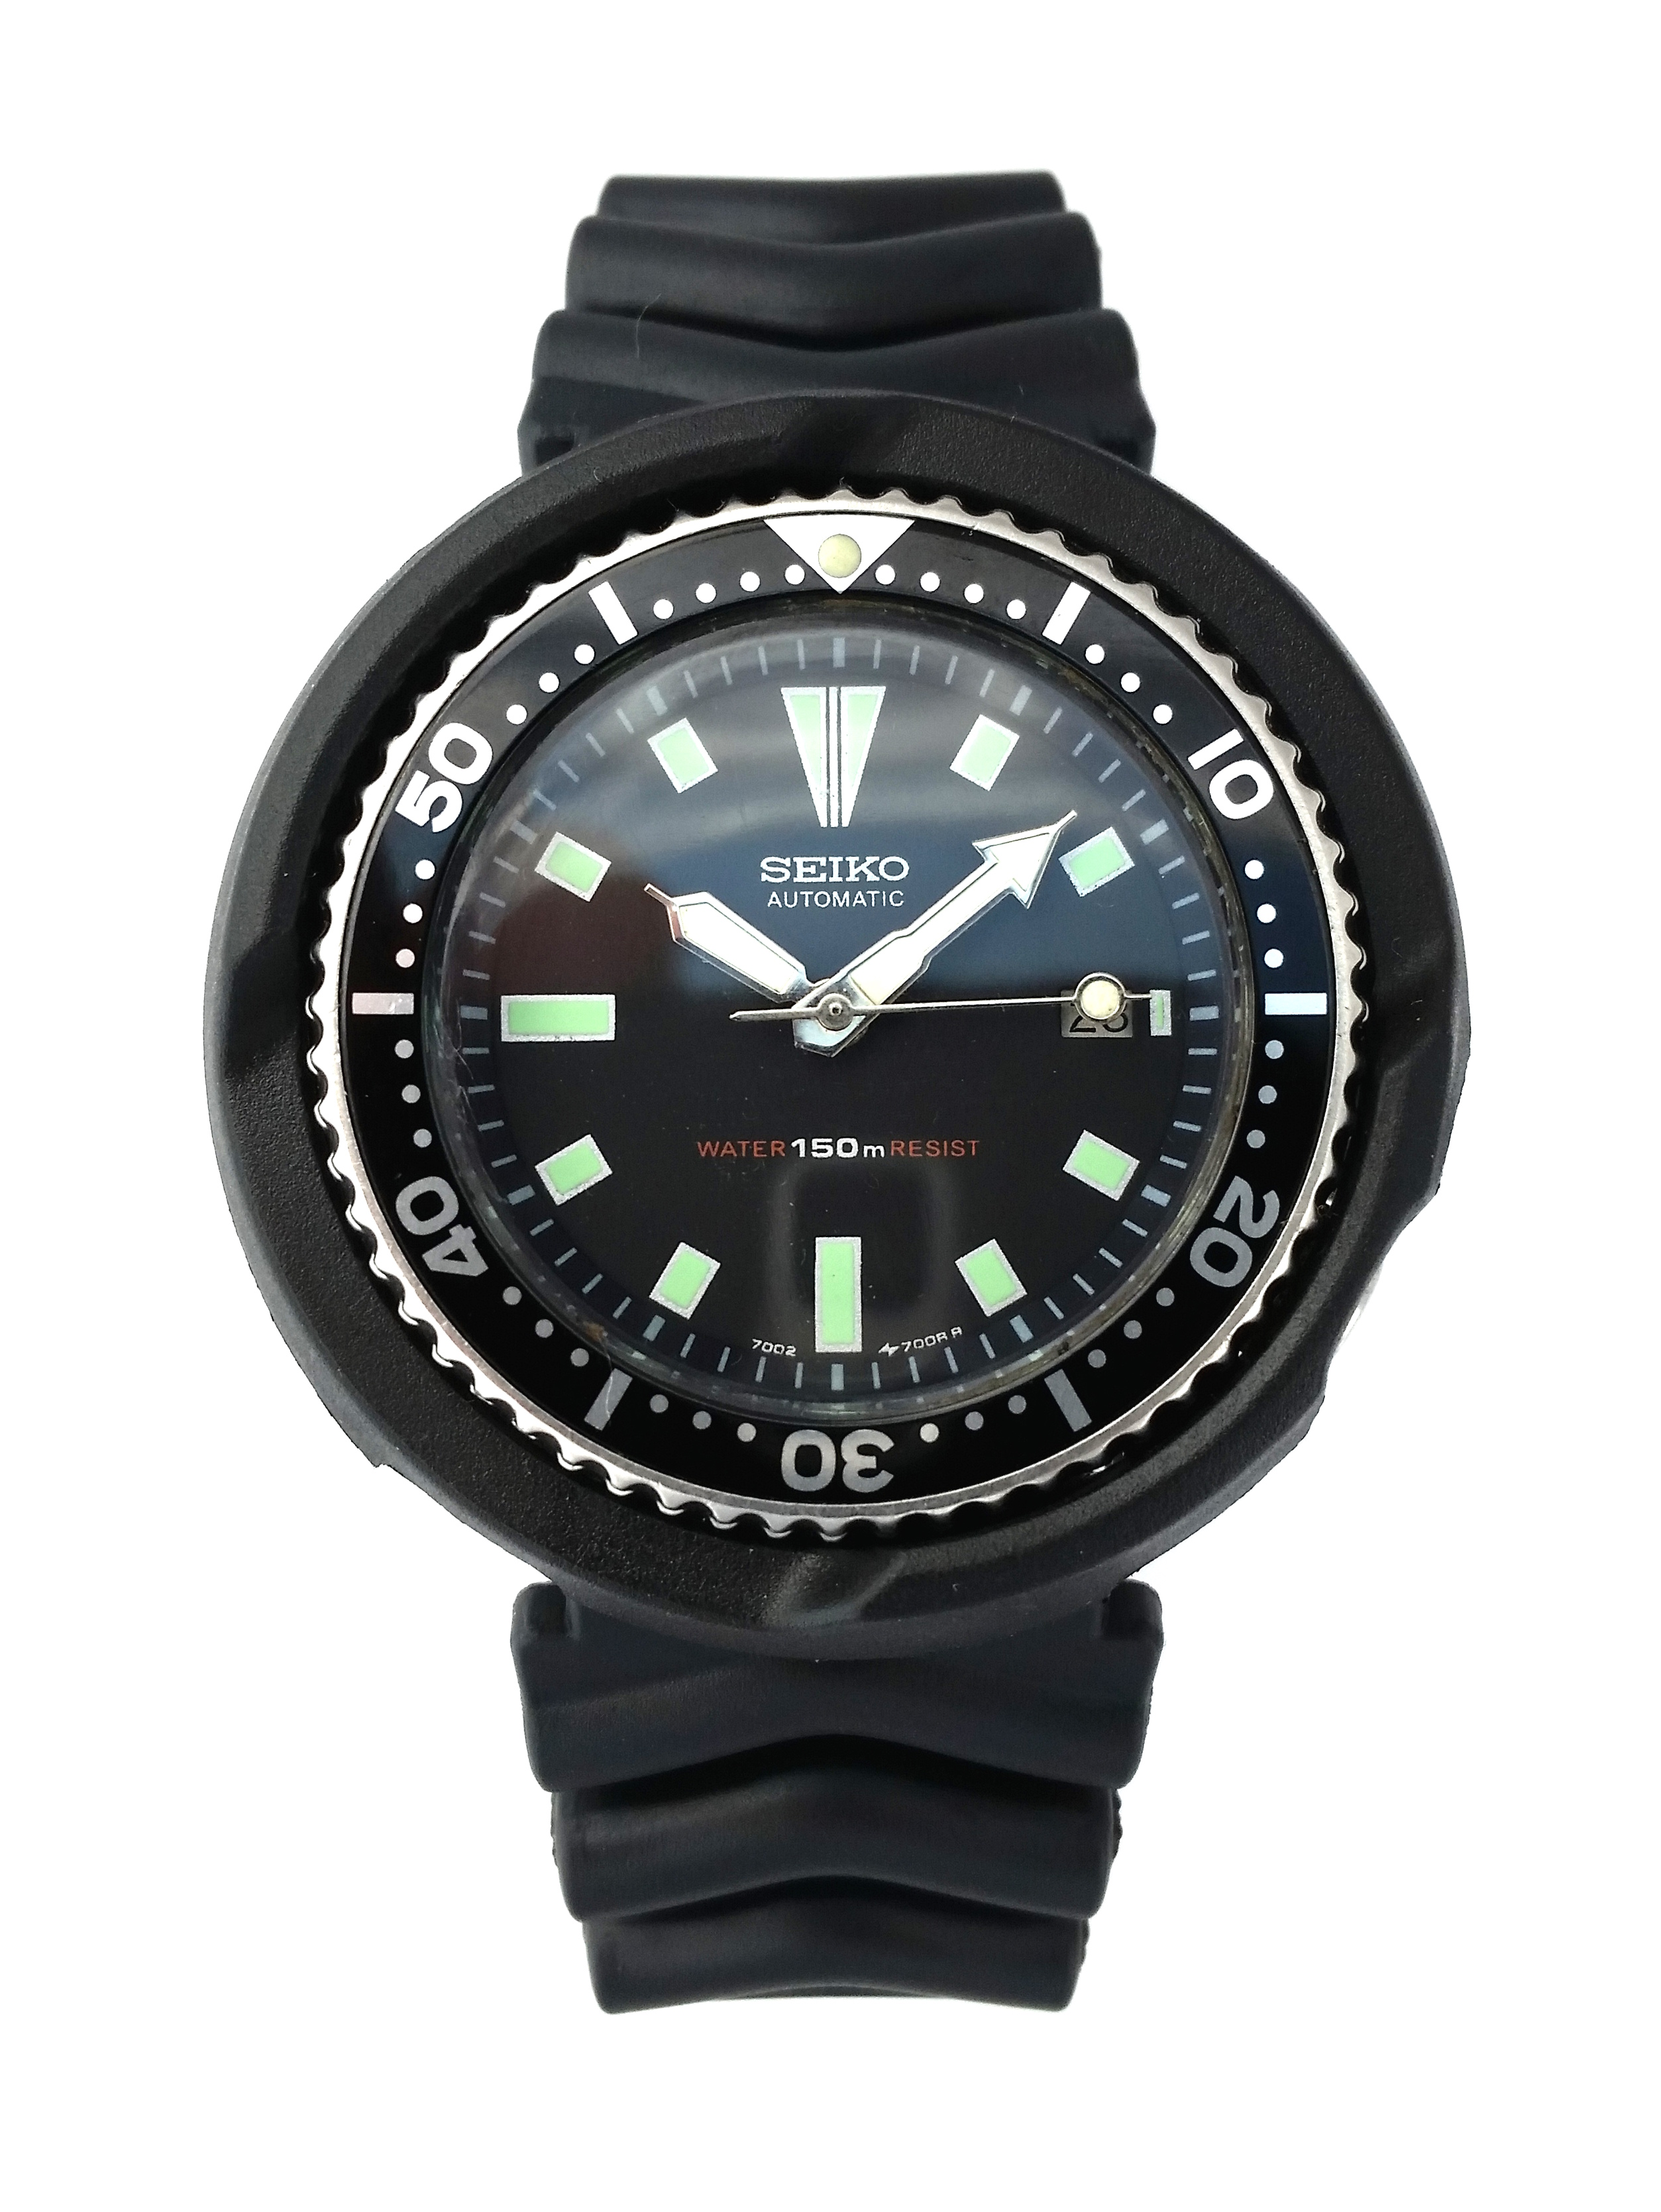 7002 Black Shroud on Watch.jpg